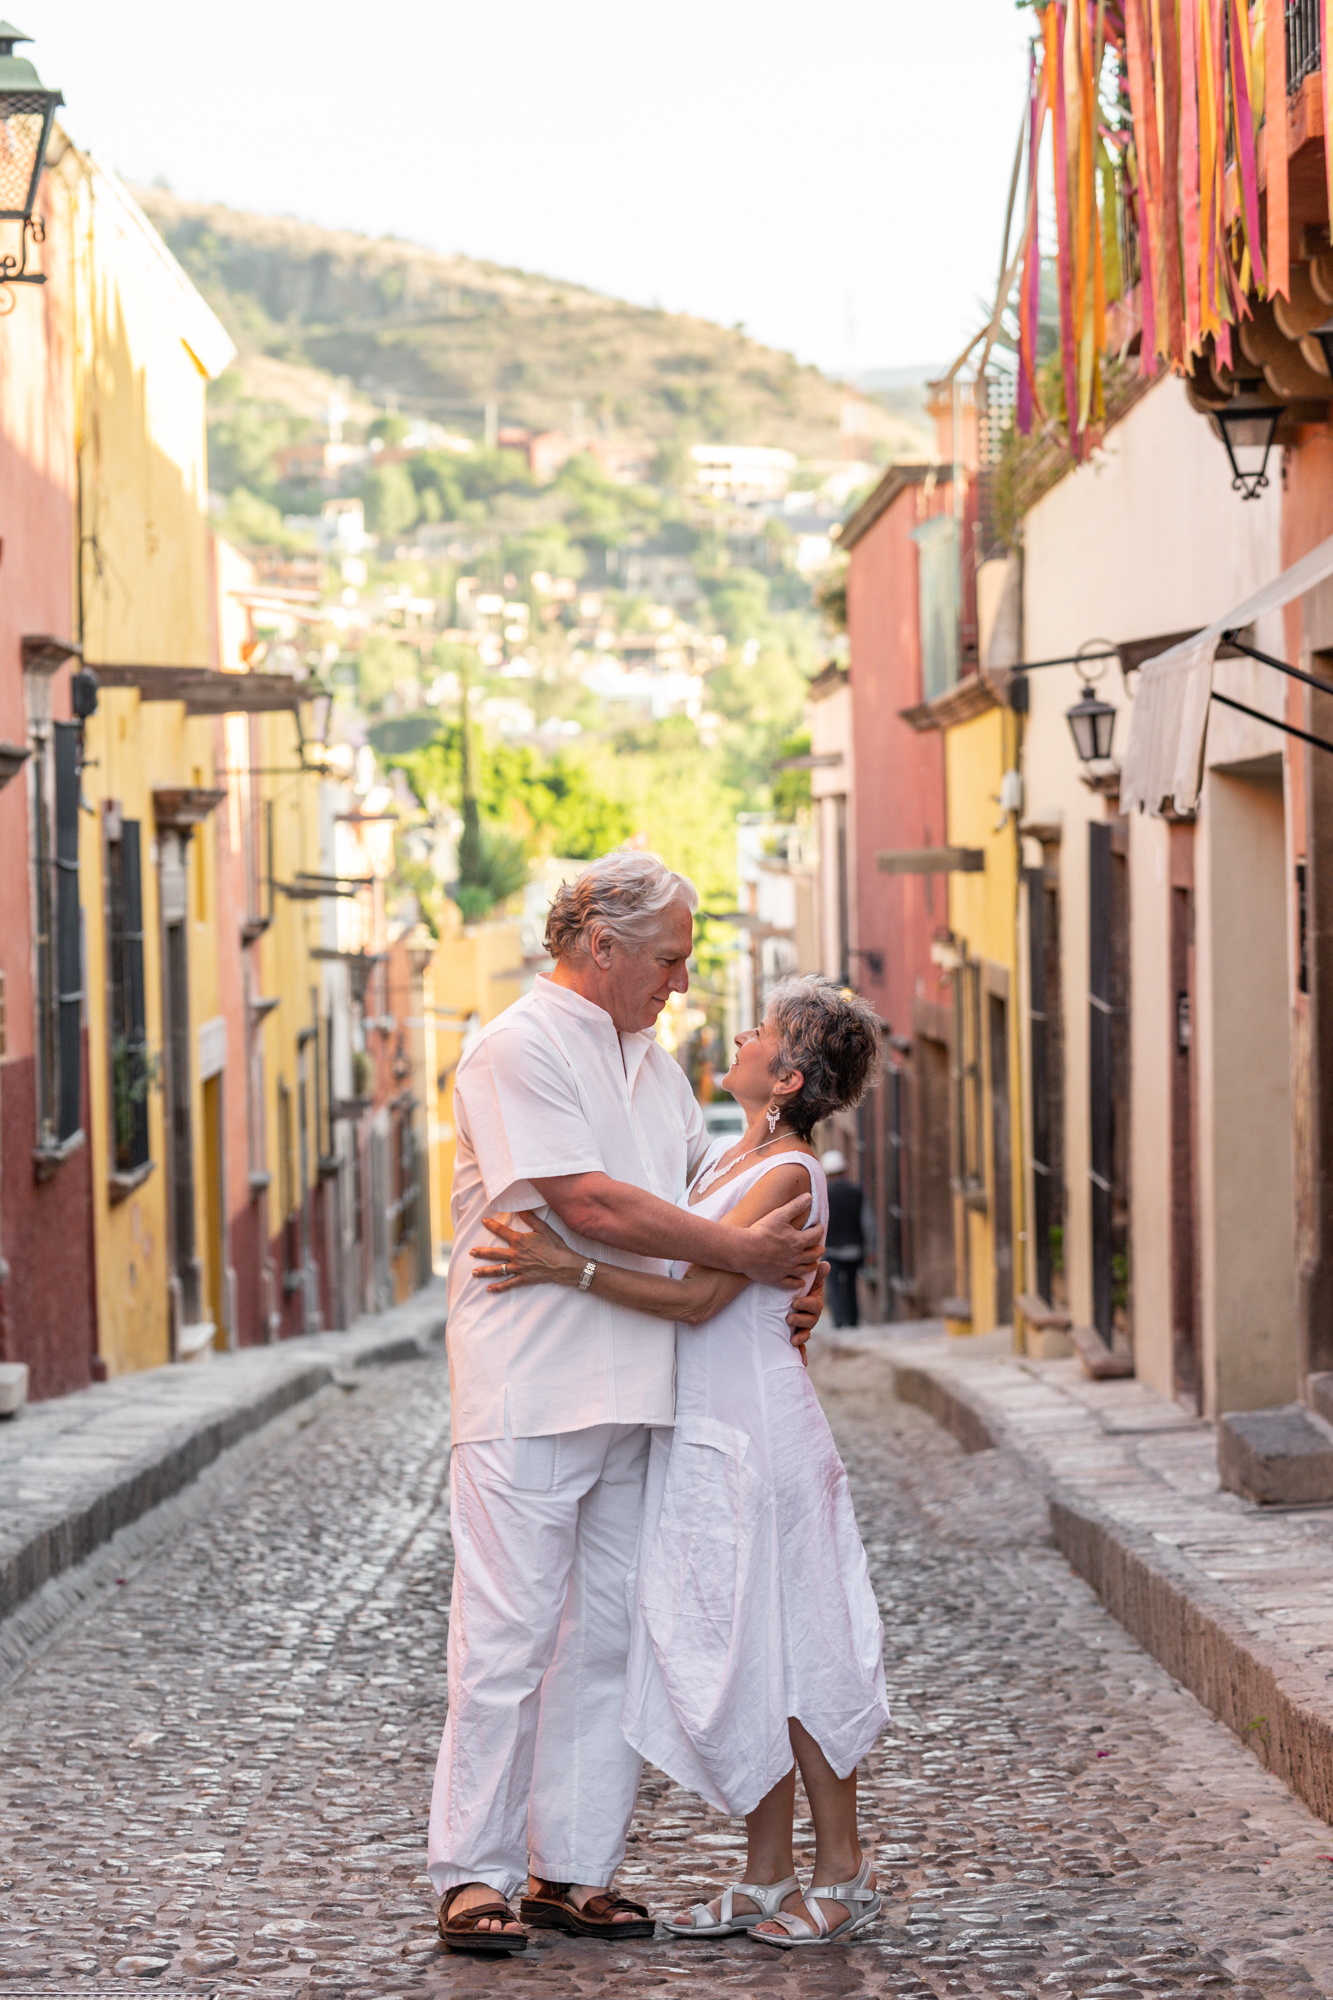 Photoshoot session in San Miguel de Allende with Suzanne and Leo-44.jpg